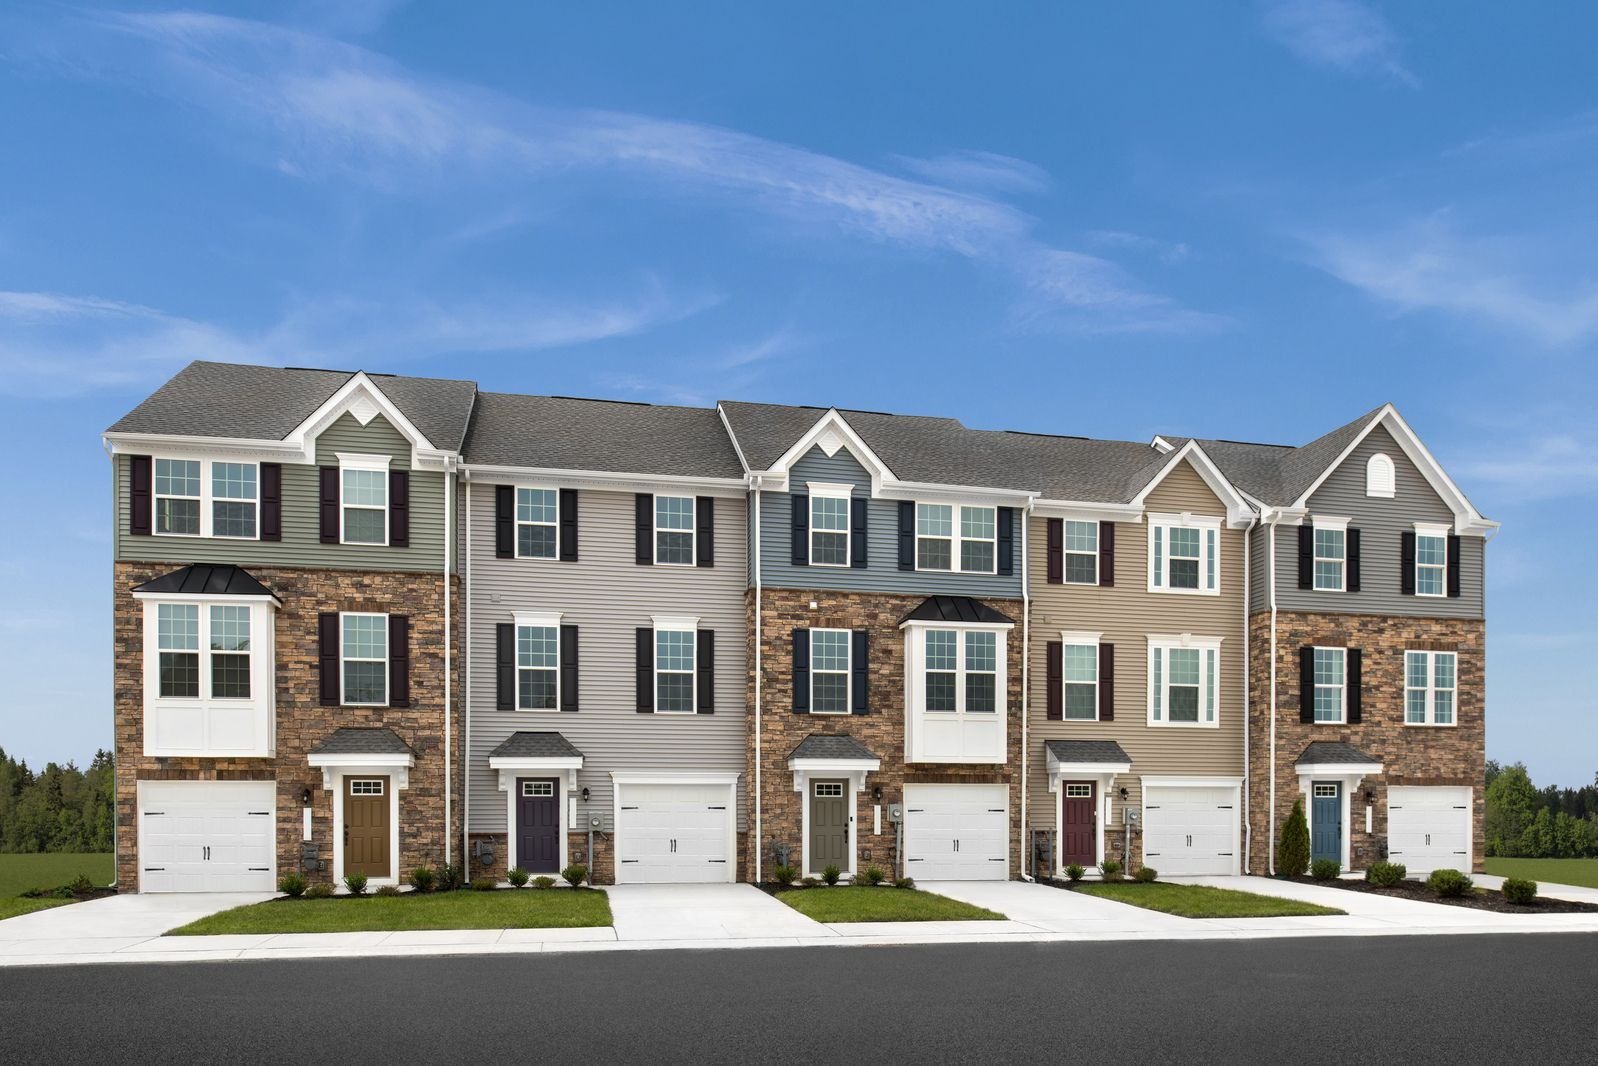 WELCOME TO ANCHOR POINT IN INDIAN HEAD, MD:1-Car Garage Townhomes in a quiet wooded community right off Rt. 210 and minutes to the Potomac River.Be one of the first to know when they are released -Join the VIP List.